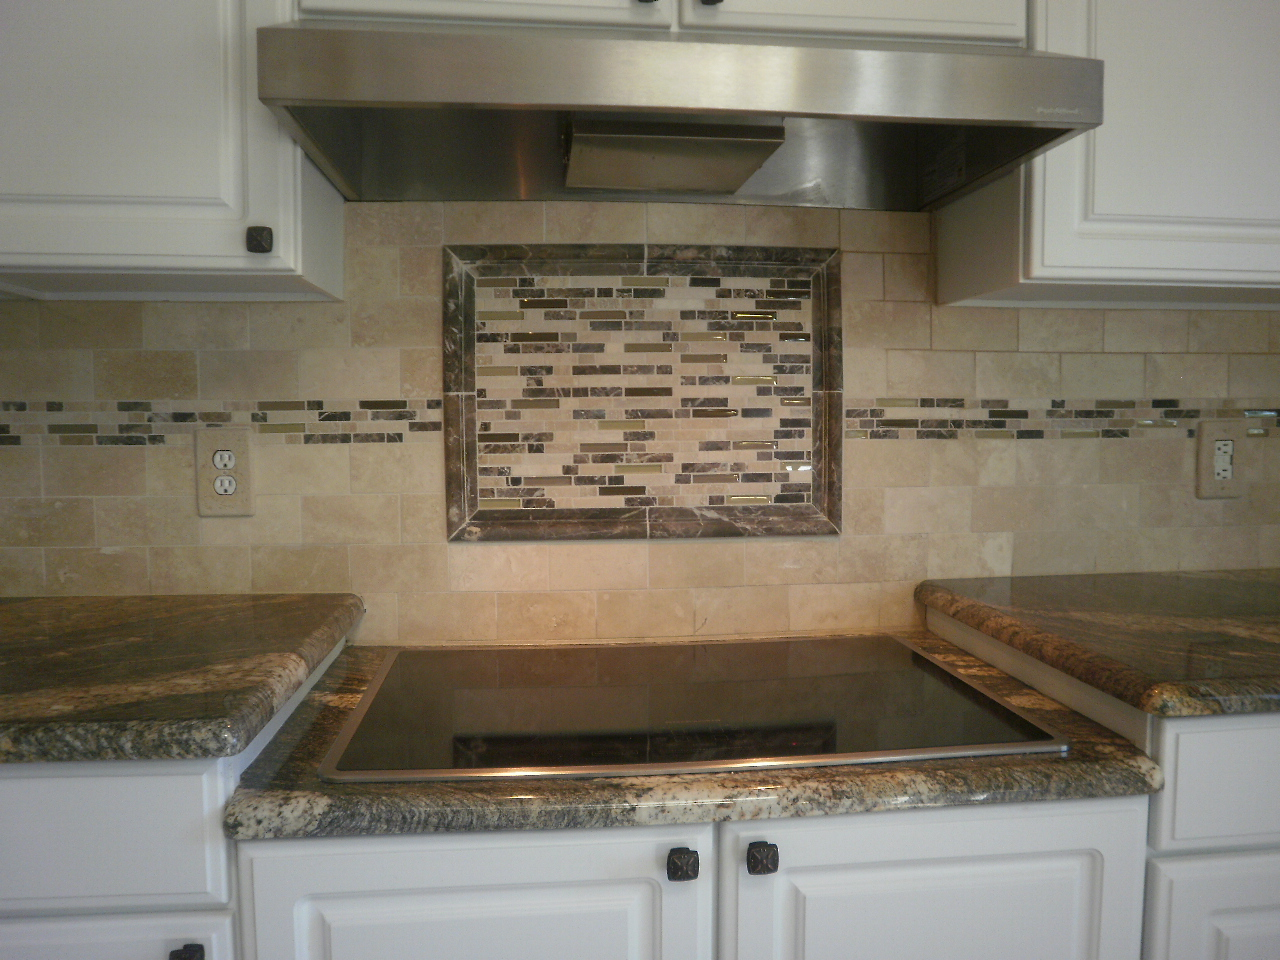 Kitchen backsplash ideas glass tile afreakatheart for Best kitchen backsplash ideas